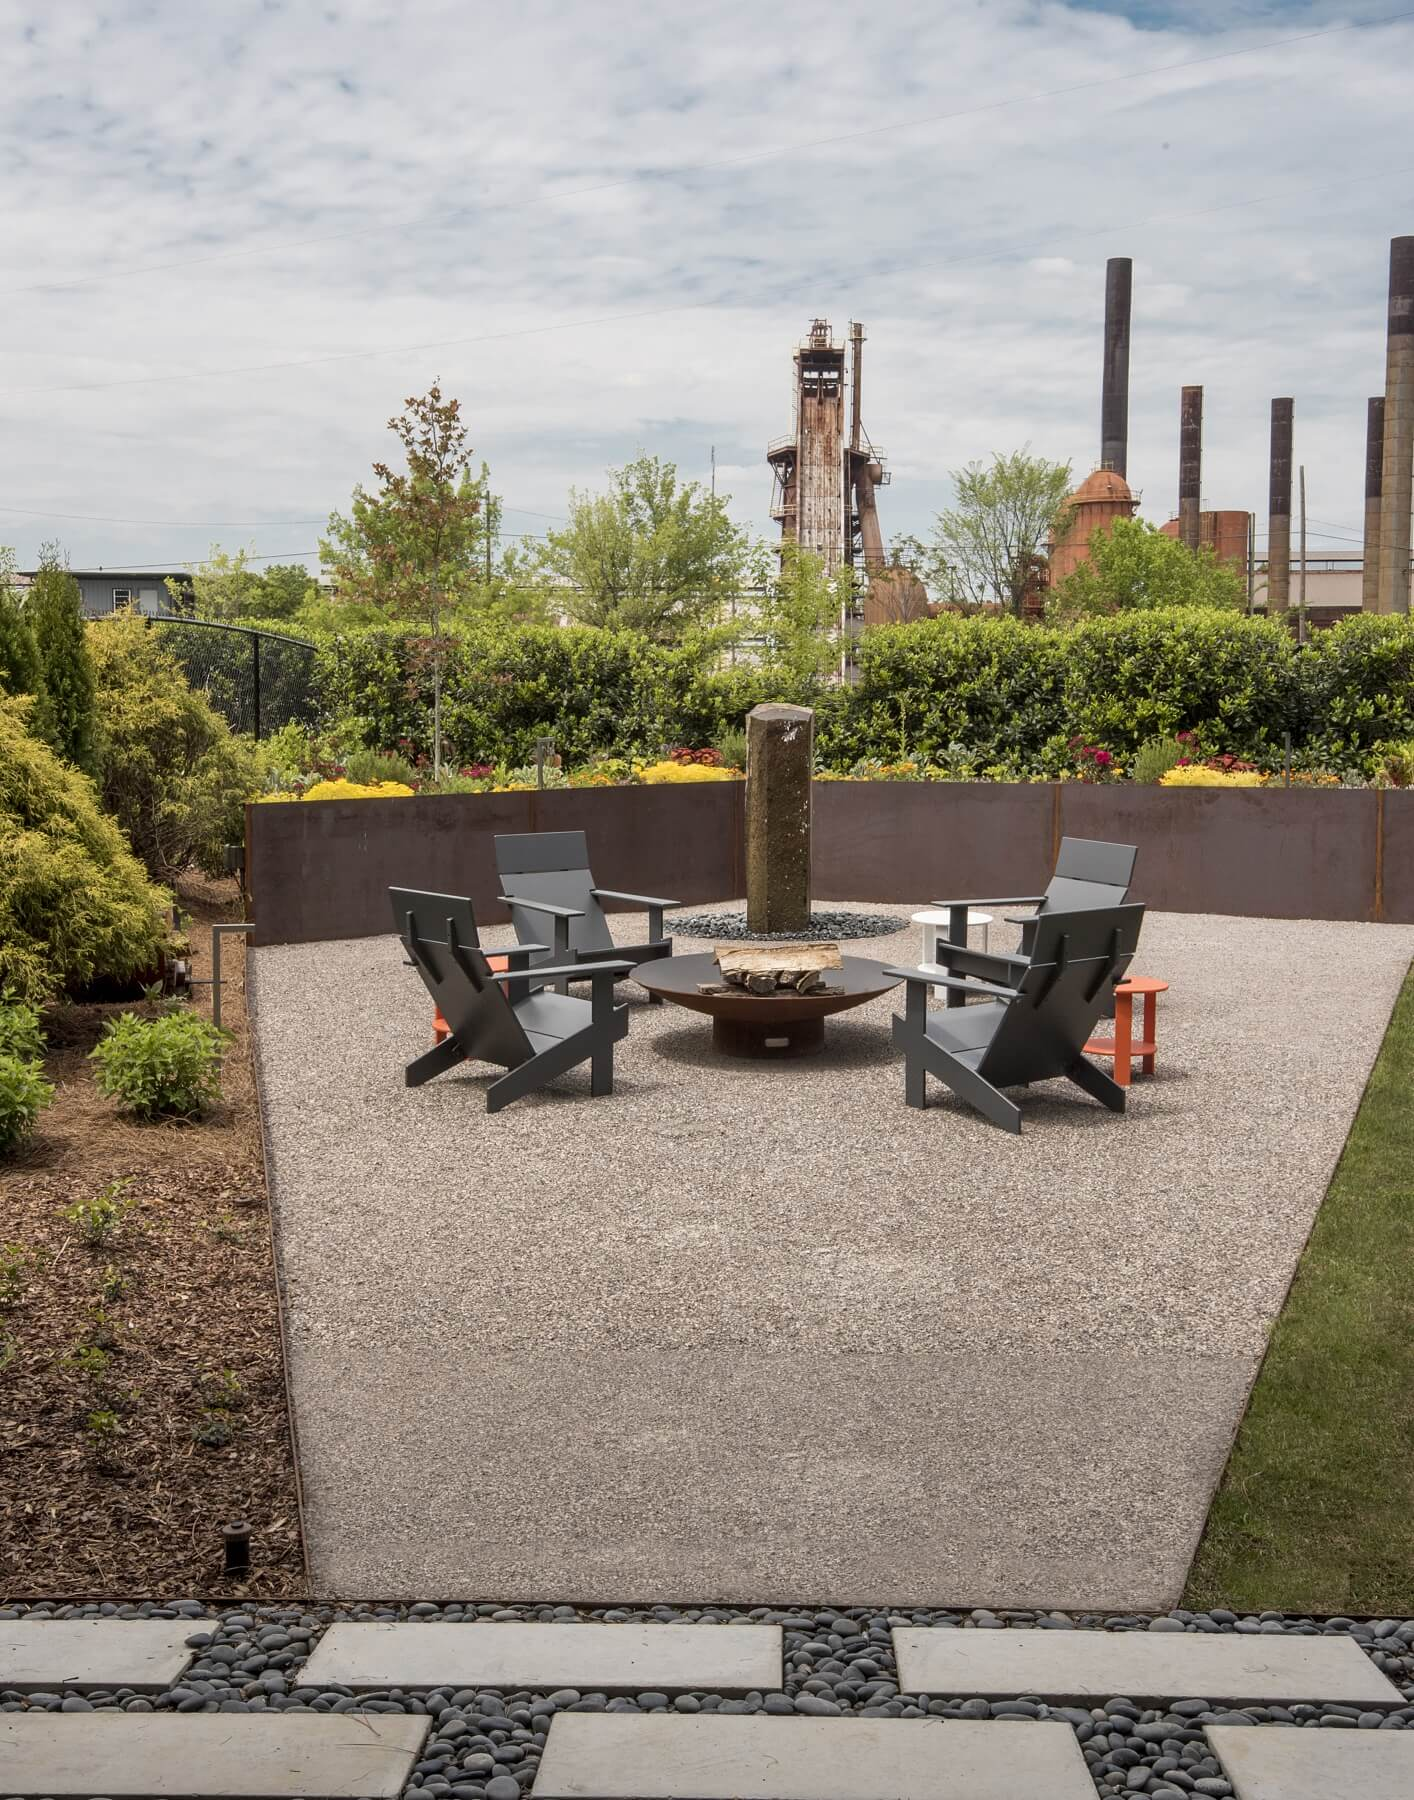 The second-floor balcony offers a fabulous view of Birmingham's iconic Sloss Furnaces and the Magic City's twinkling night skyline. Image: Liesa Cole